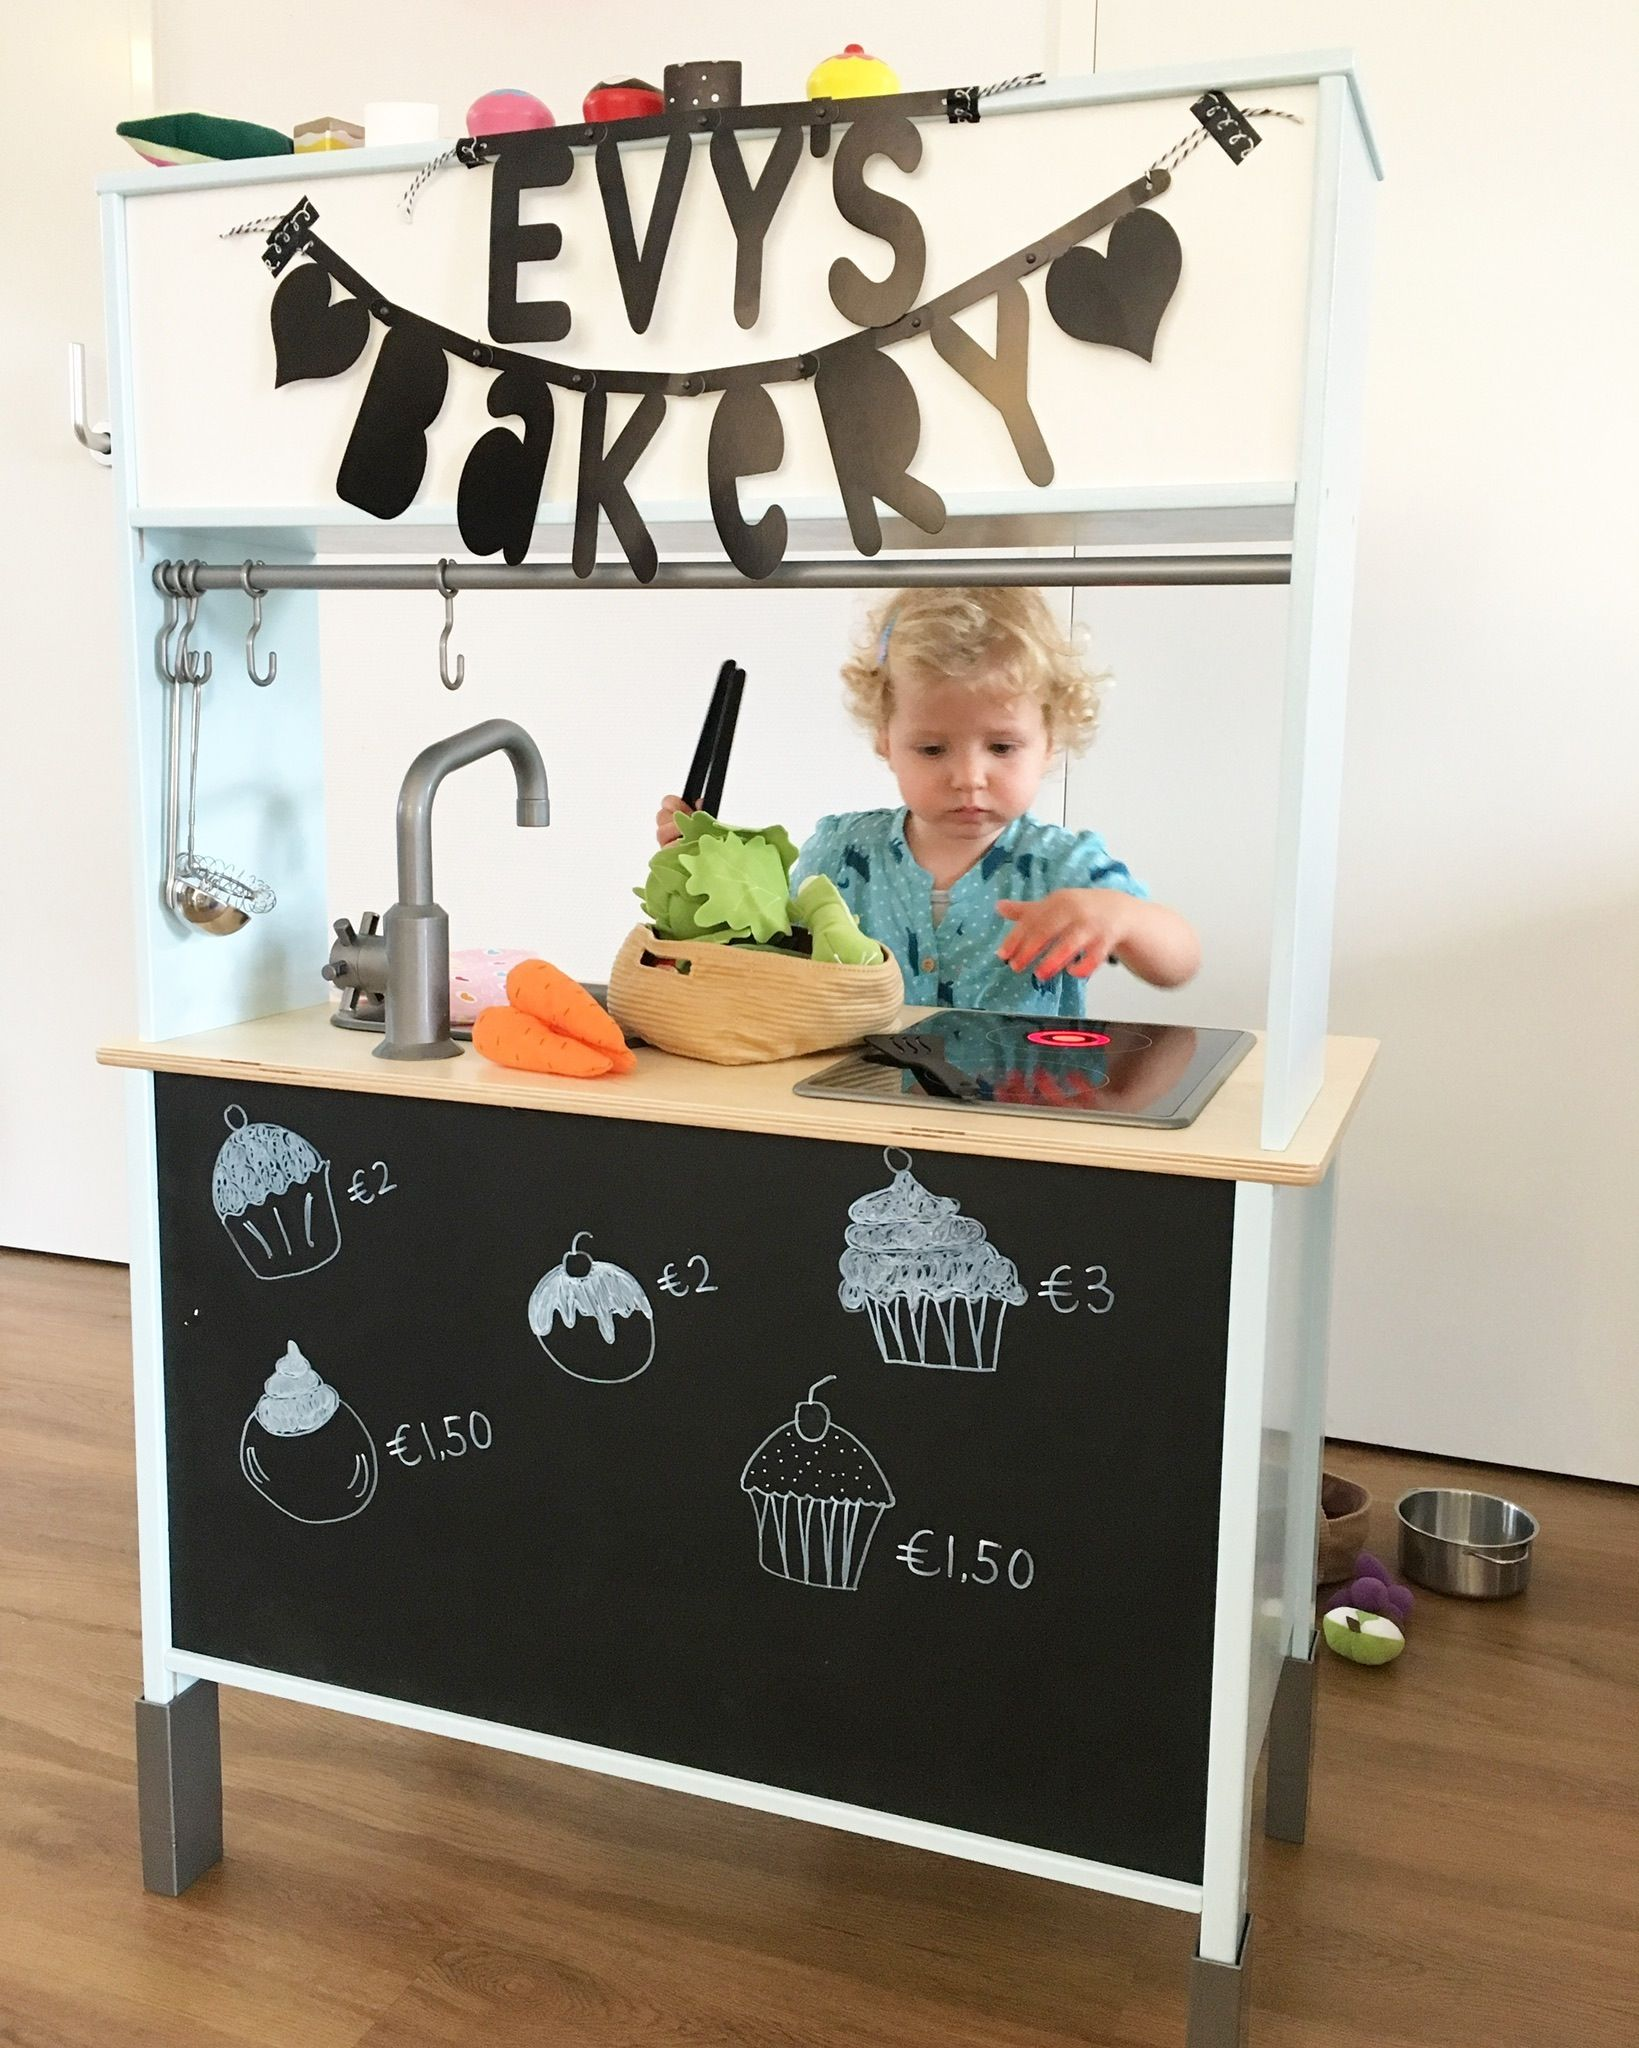 ikea duktig keukentje pimpen ikea duktig children 39 s kitchen hacks make over renovations. Black Bedroom Furniture Sets. Home Design Ideas